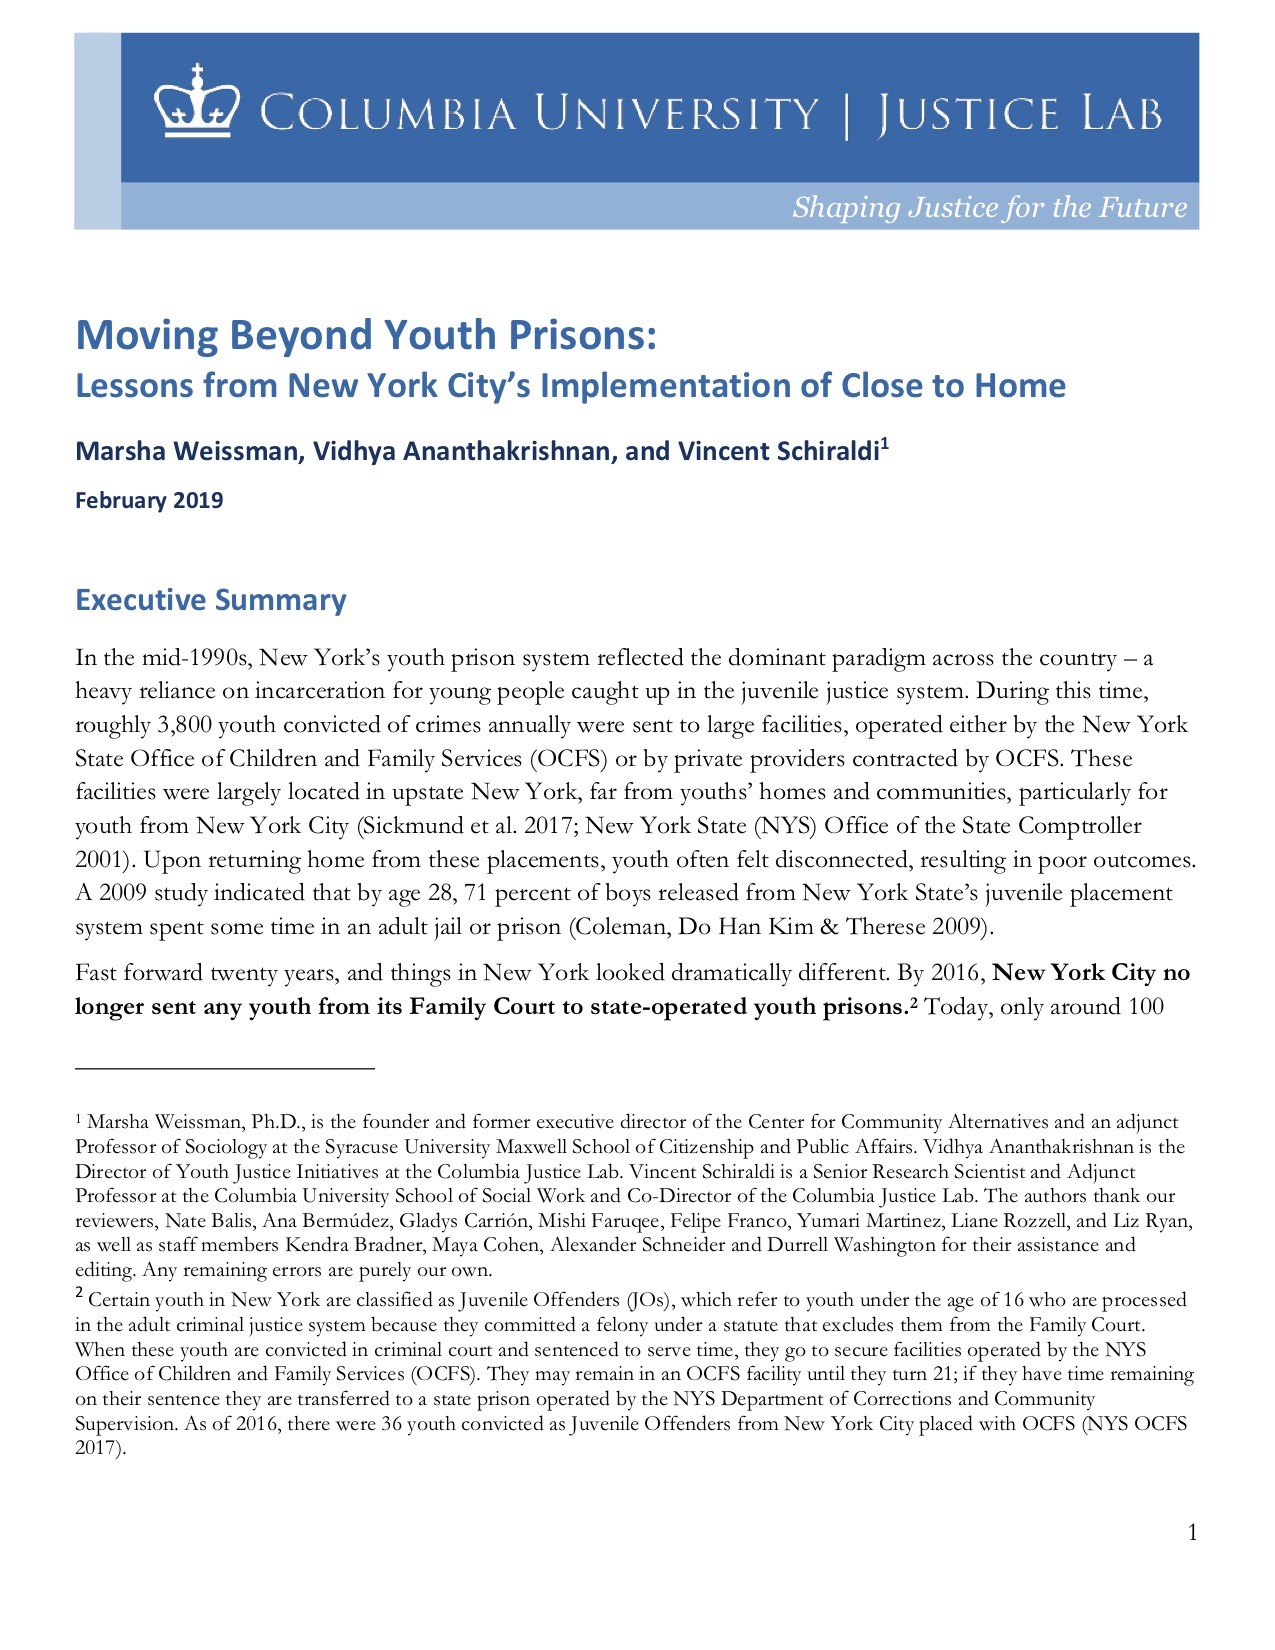 Moving Beyond Youth Prisons: Executive Summary